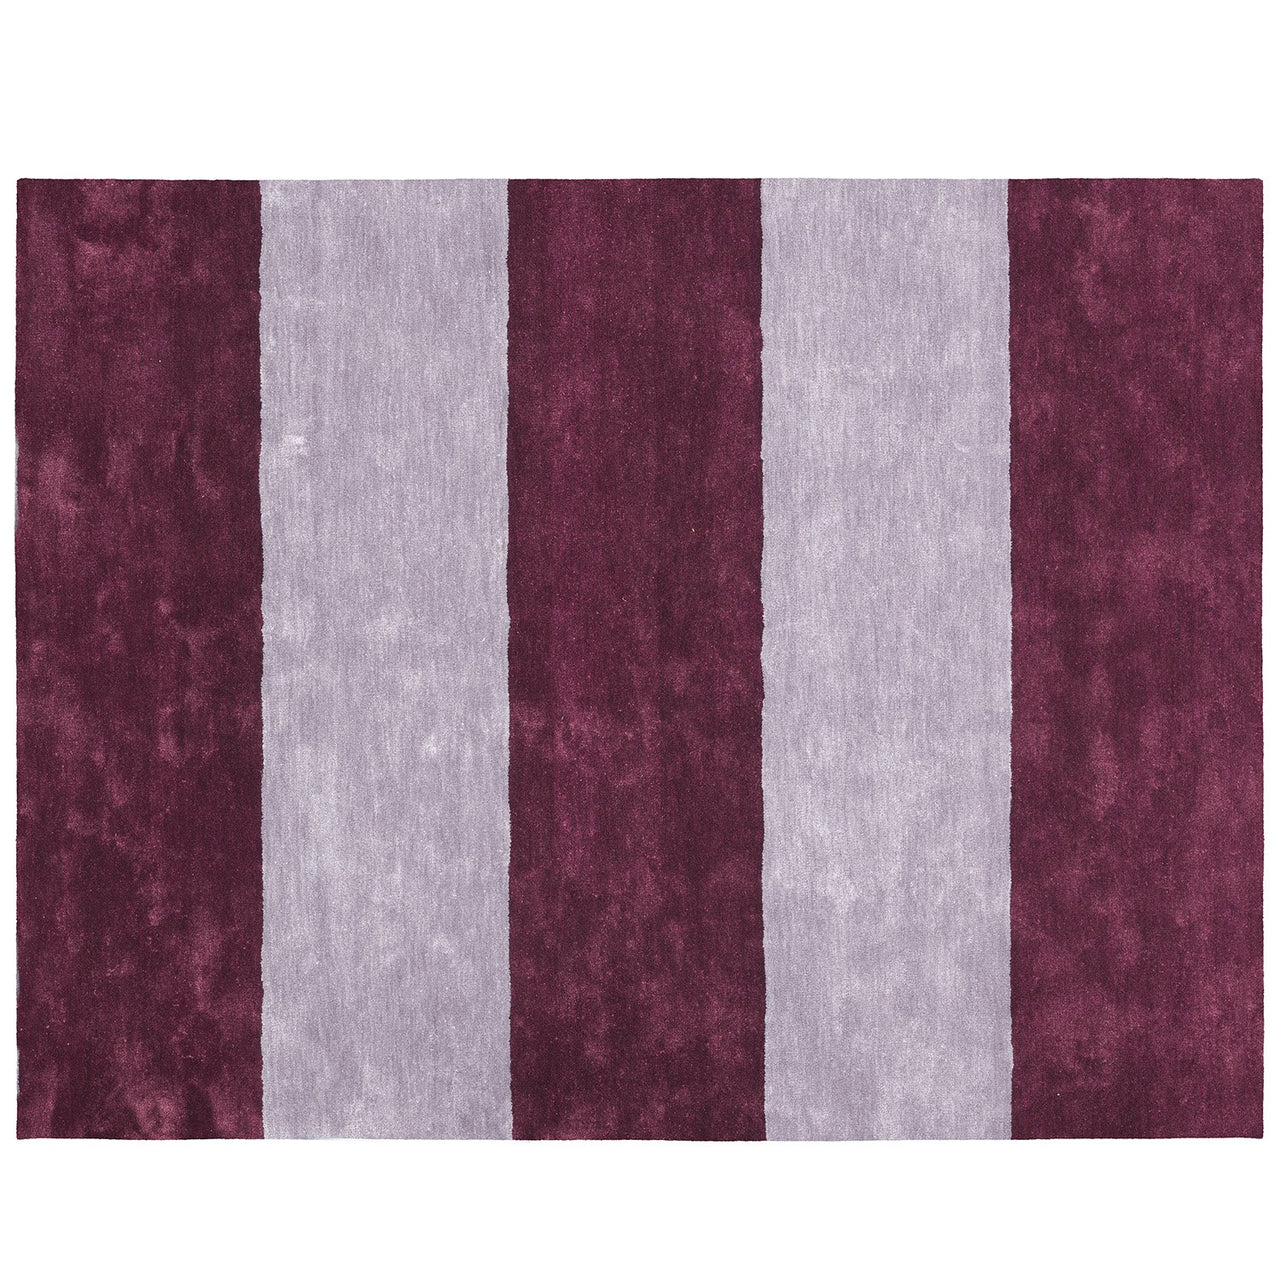 Pavilion Carpet: Large + Burgundy + Lilac